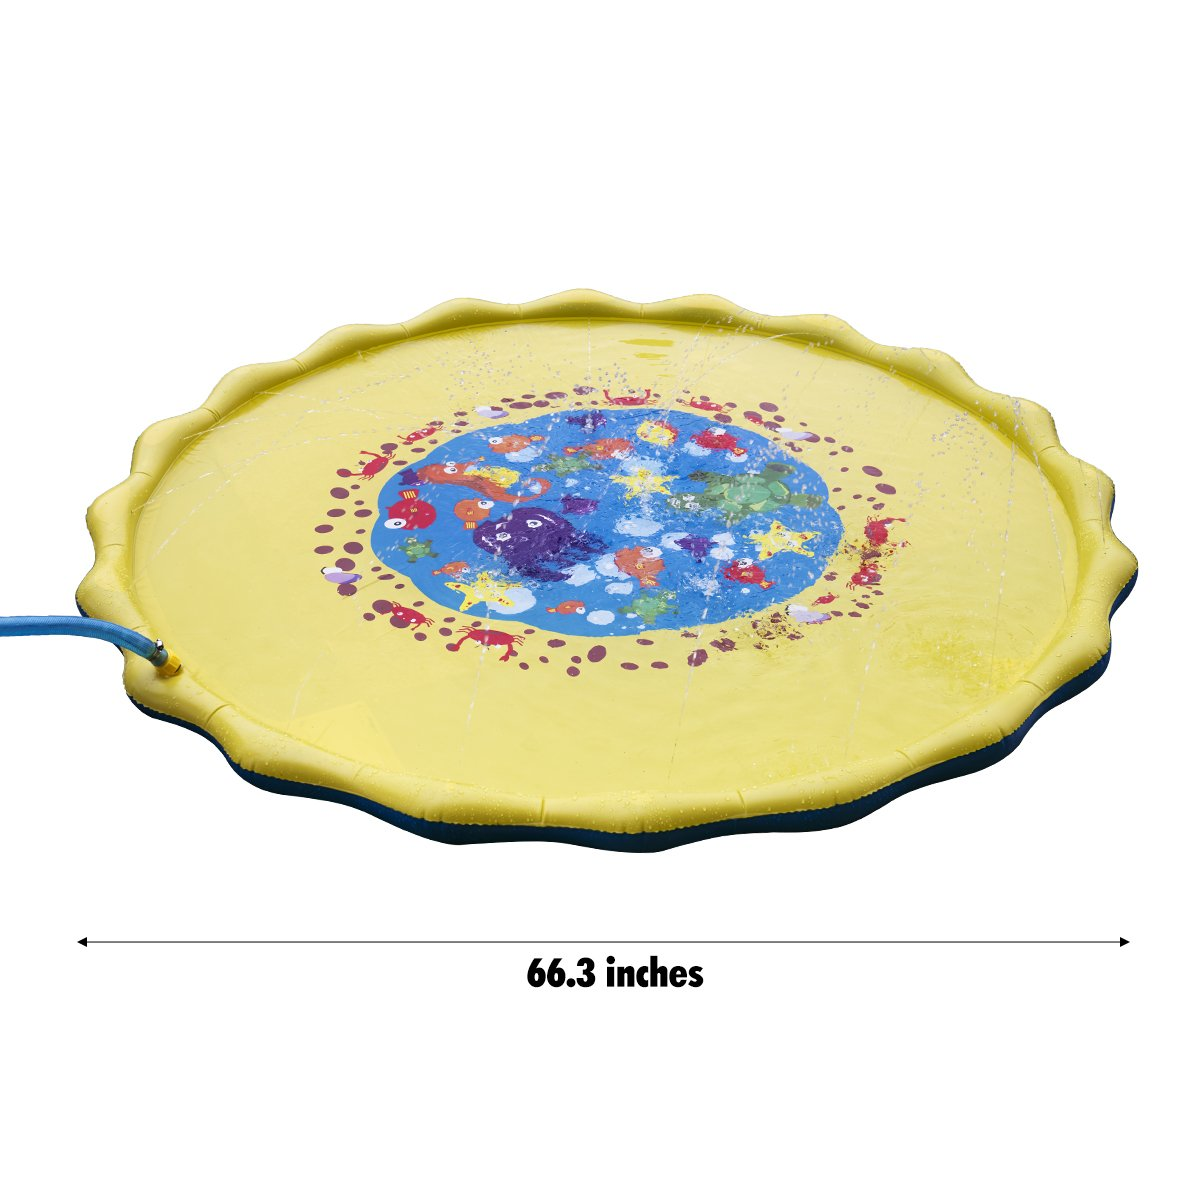 Splash Play Mat, 68in-Diameter Perfect Inflatable Outdoor Sprinkler Pad Summer Fun Backyard Play for Infants Toddlers and Kids by DAPRIL (Image #3)